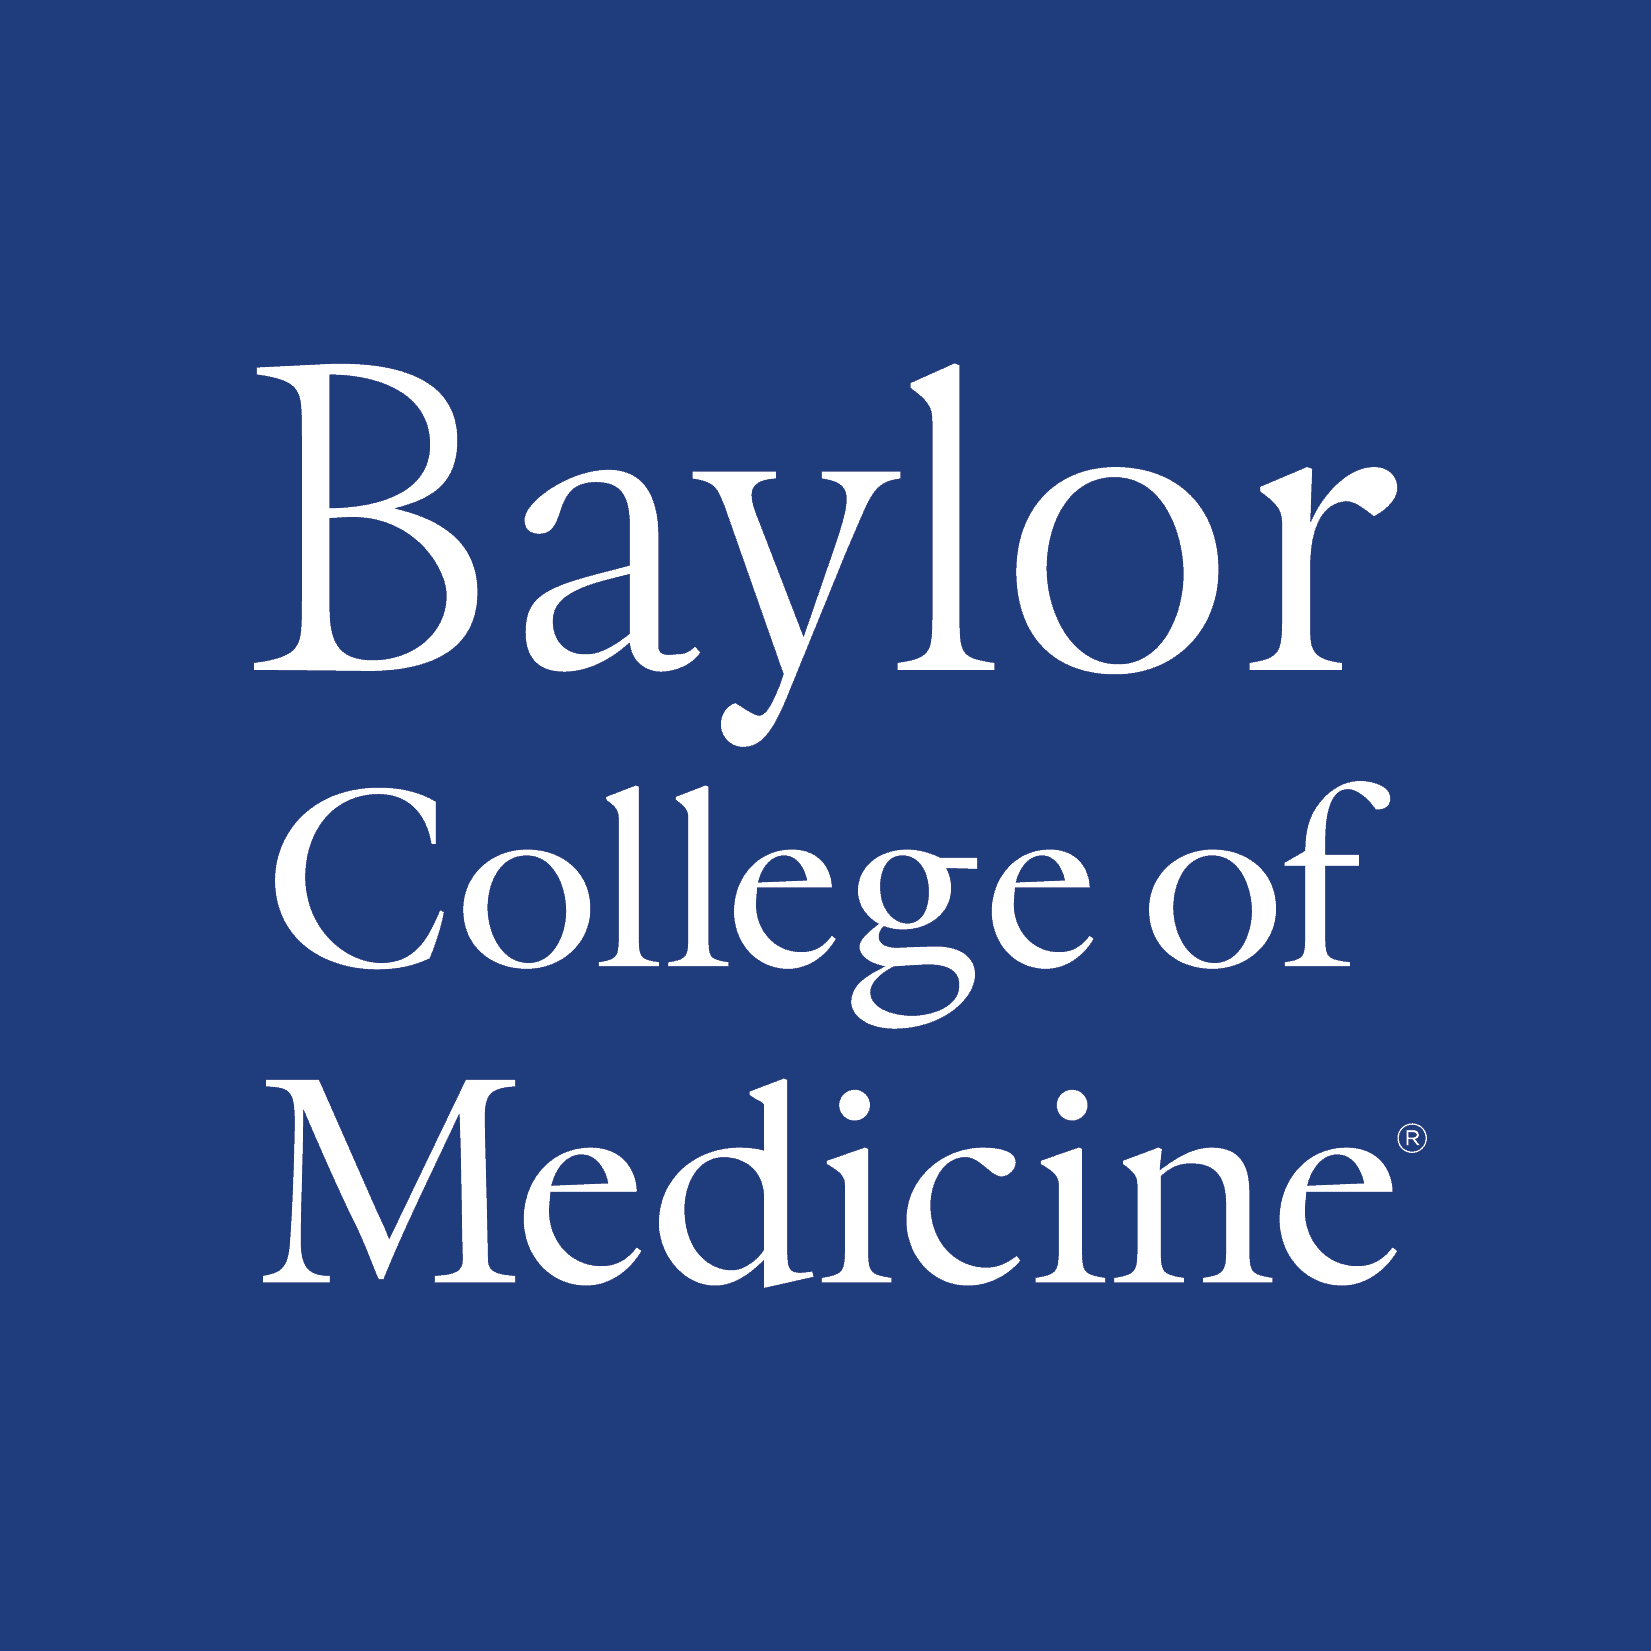 Baylor College of Medicine are recruiting people across the U.S. to share their experiences and how the pandemic is impacting their health and well-being in an online survey.